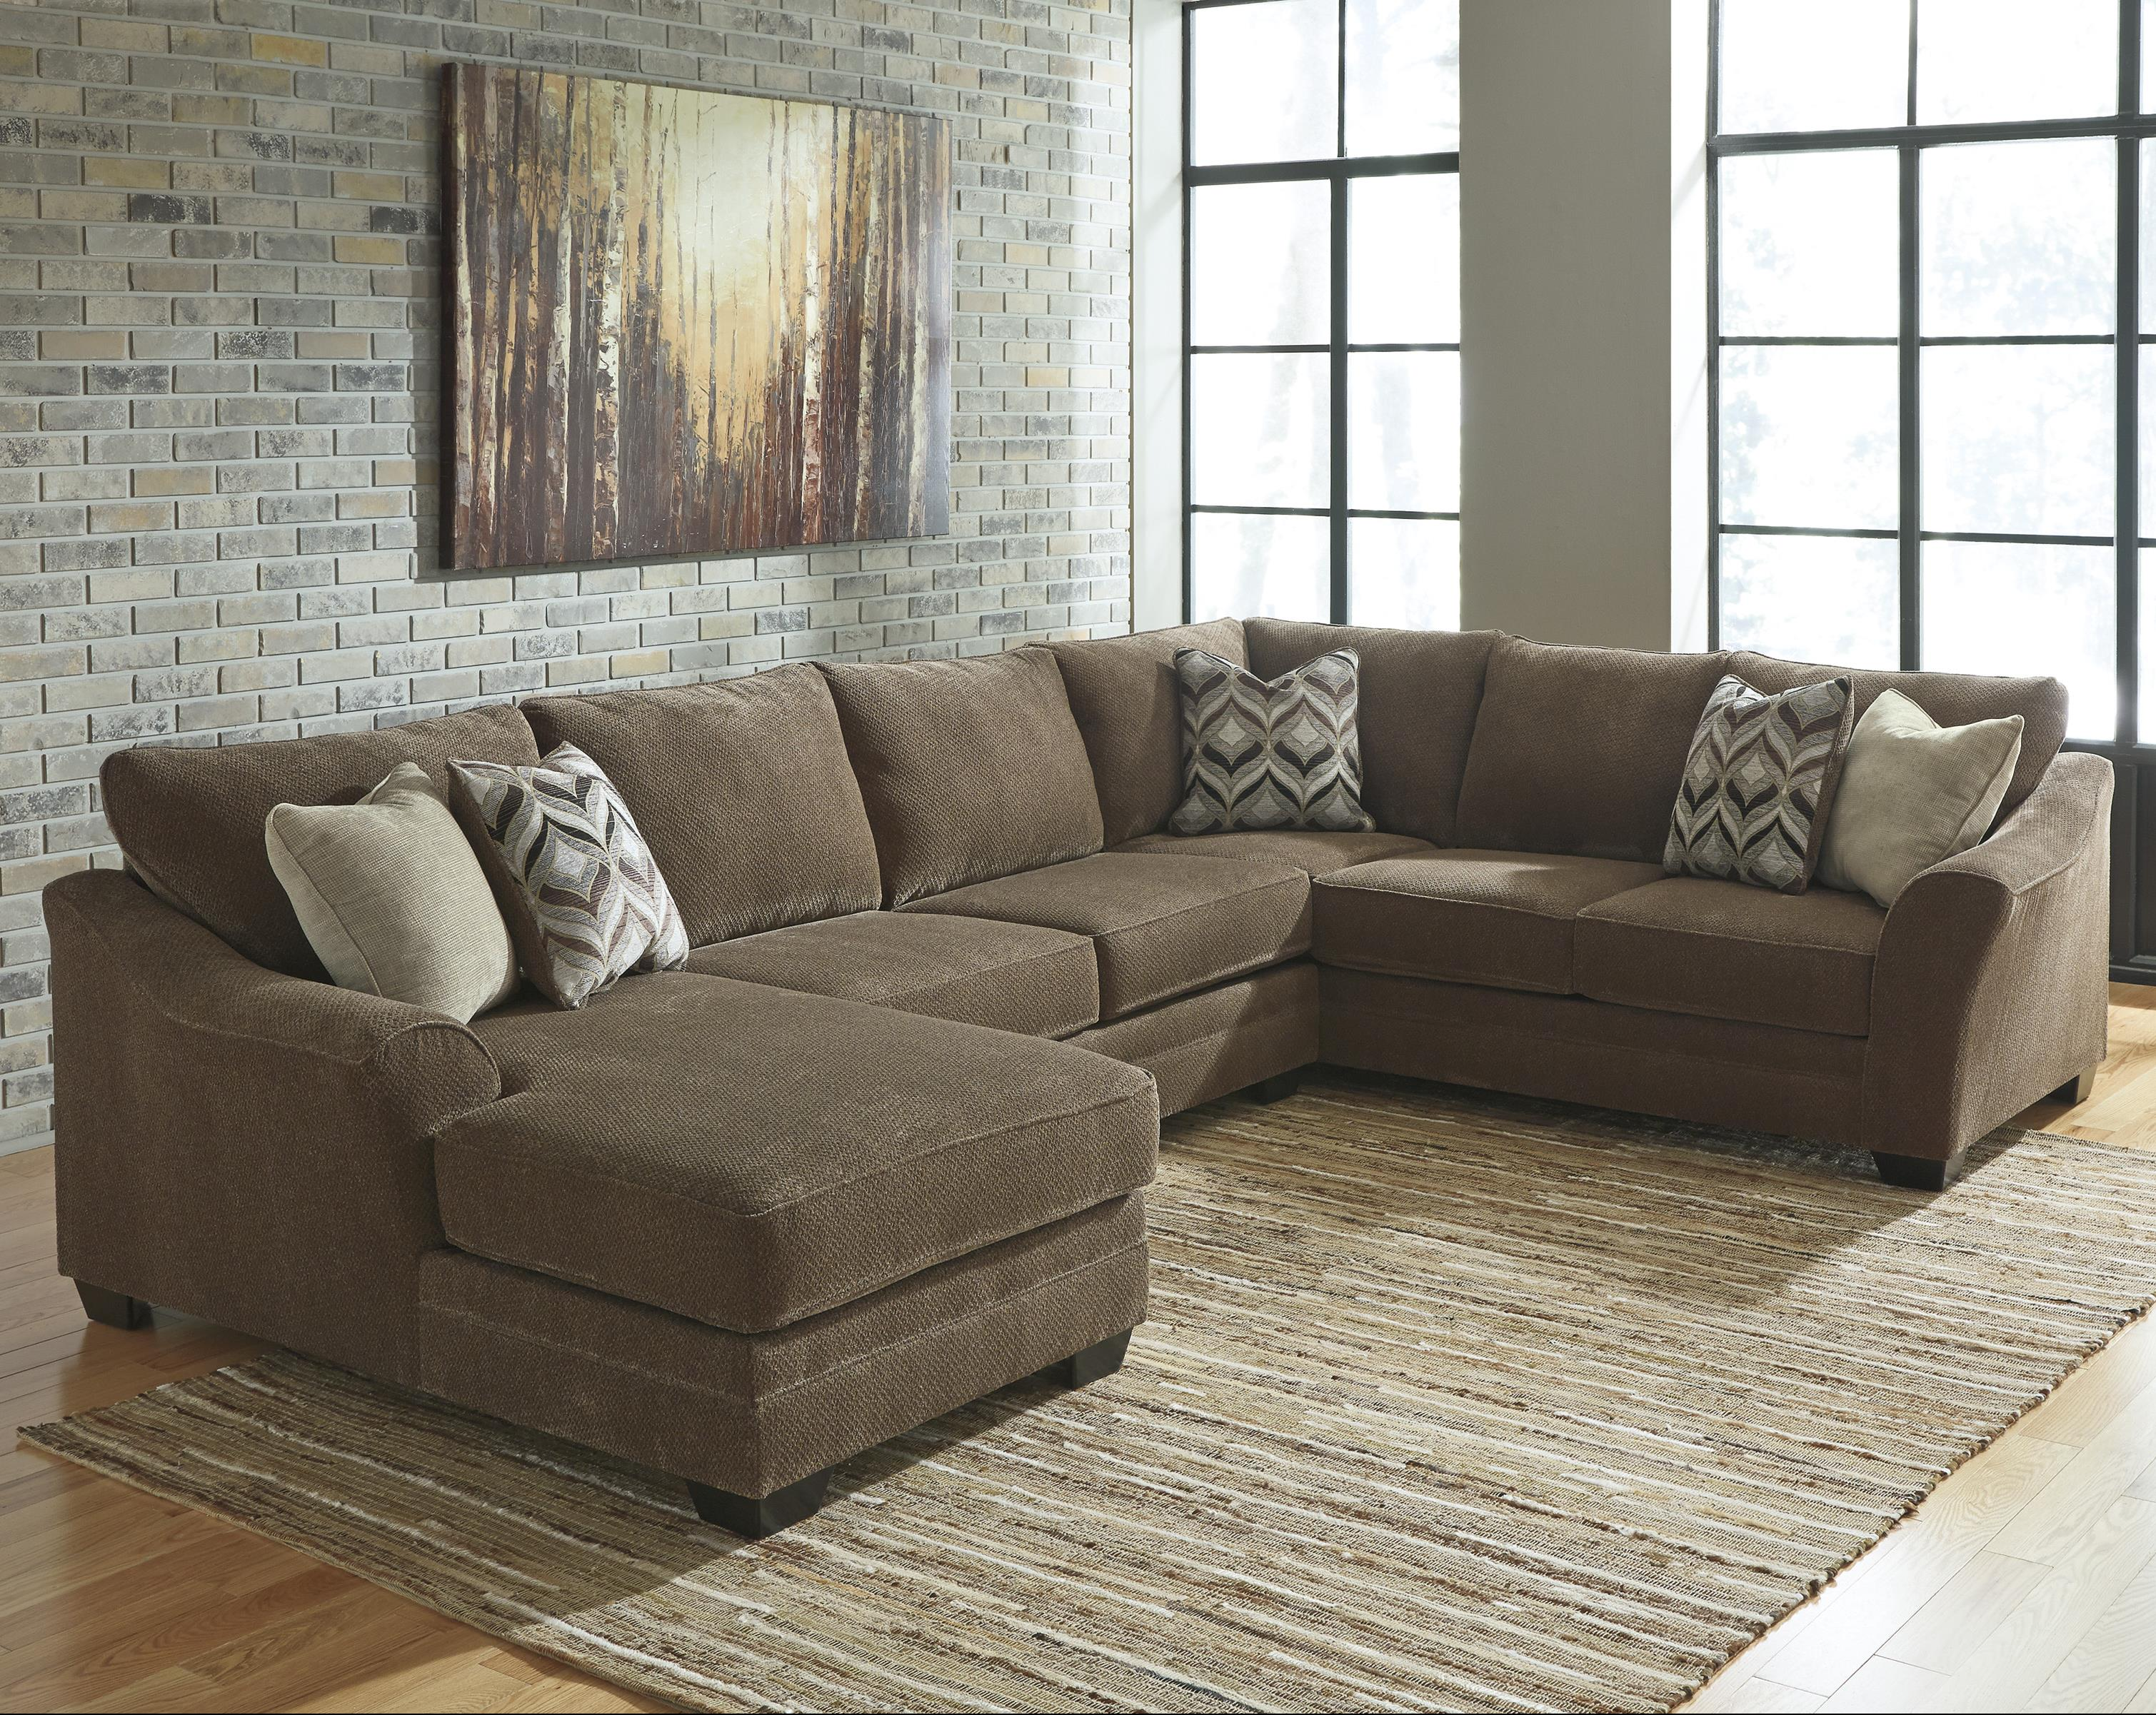 back sofa right reclining by products chaise furniture with sectional rec design console ashley w press